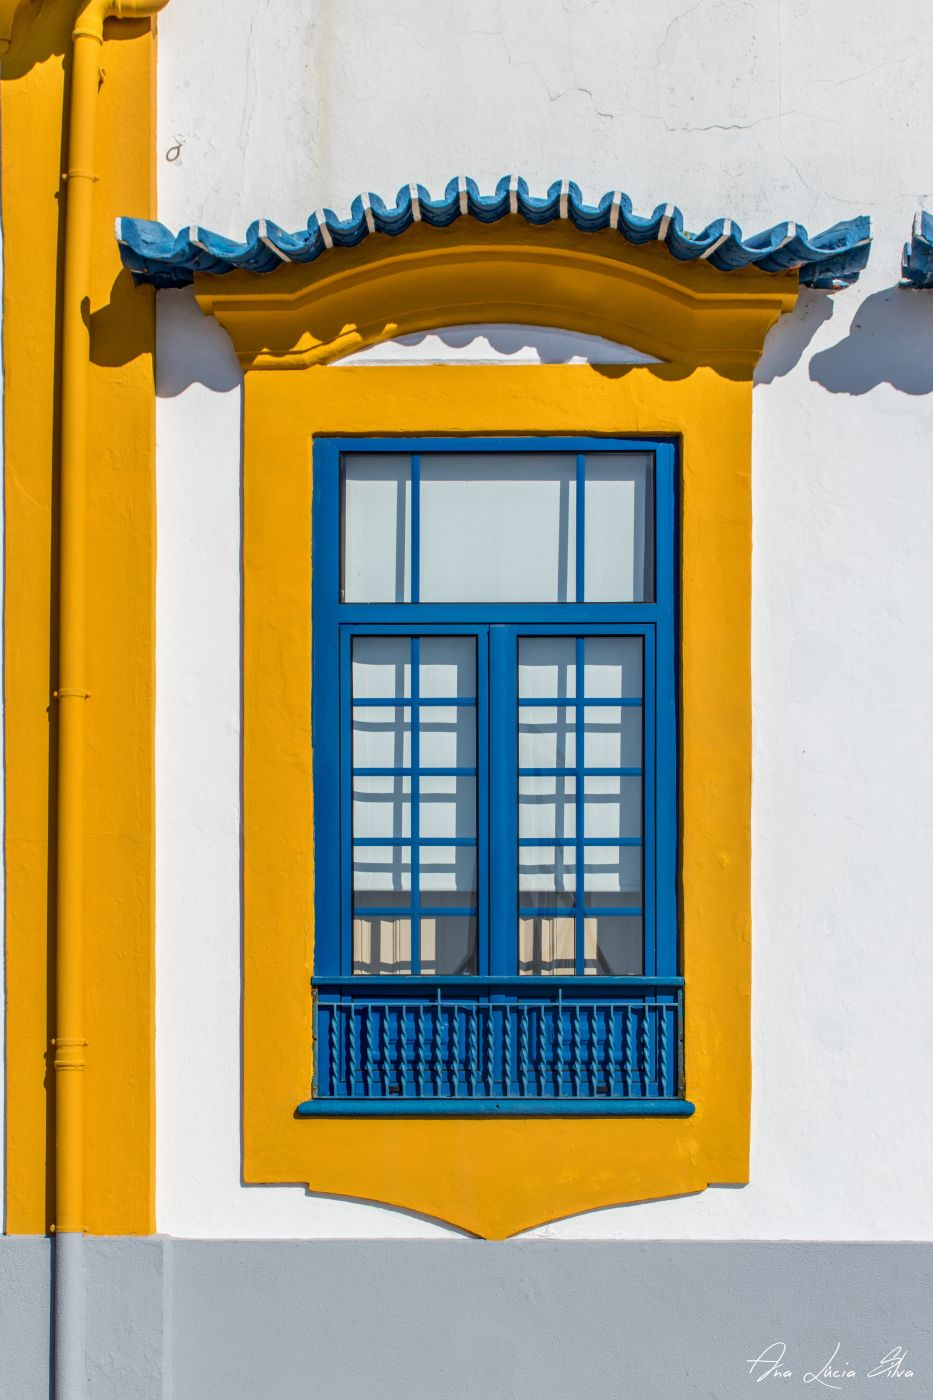 Blue &Yellow Window House, Portugal